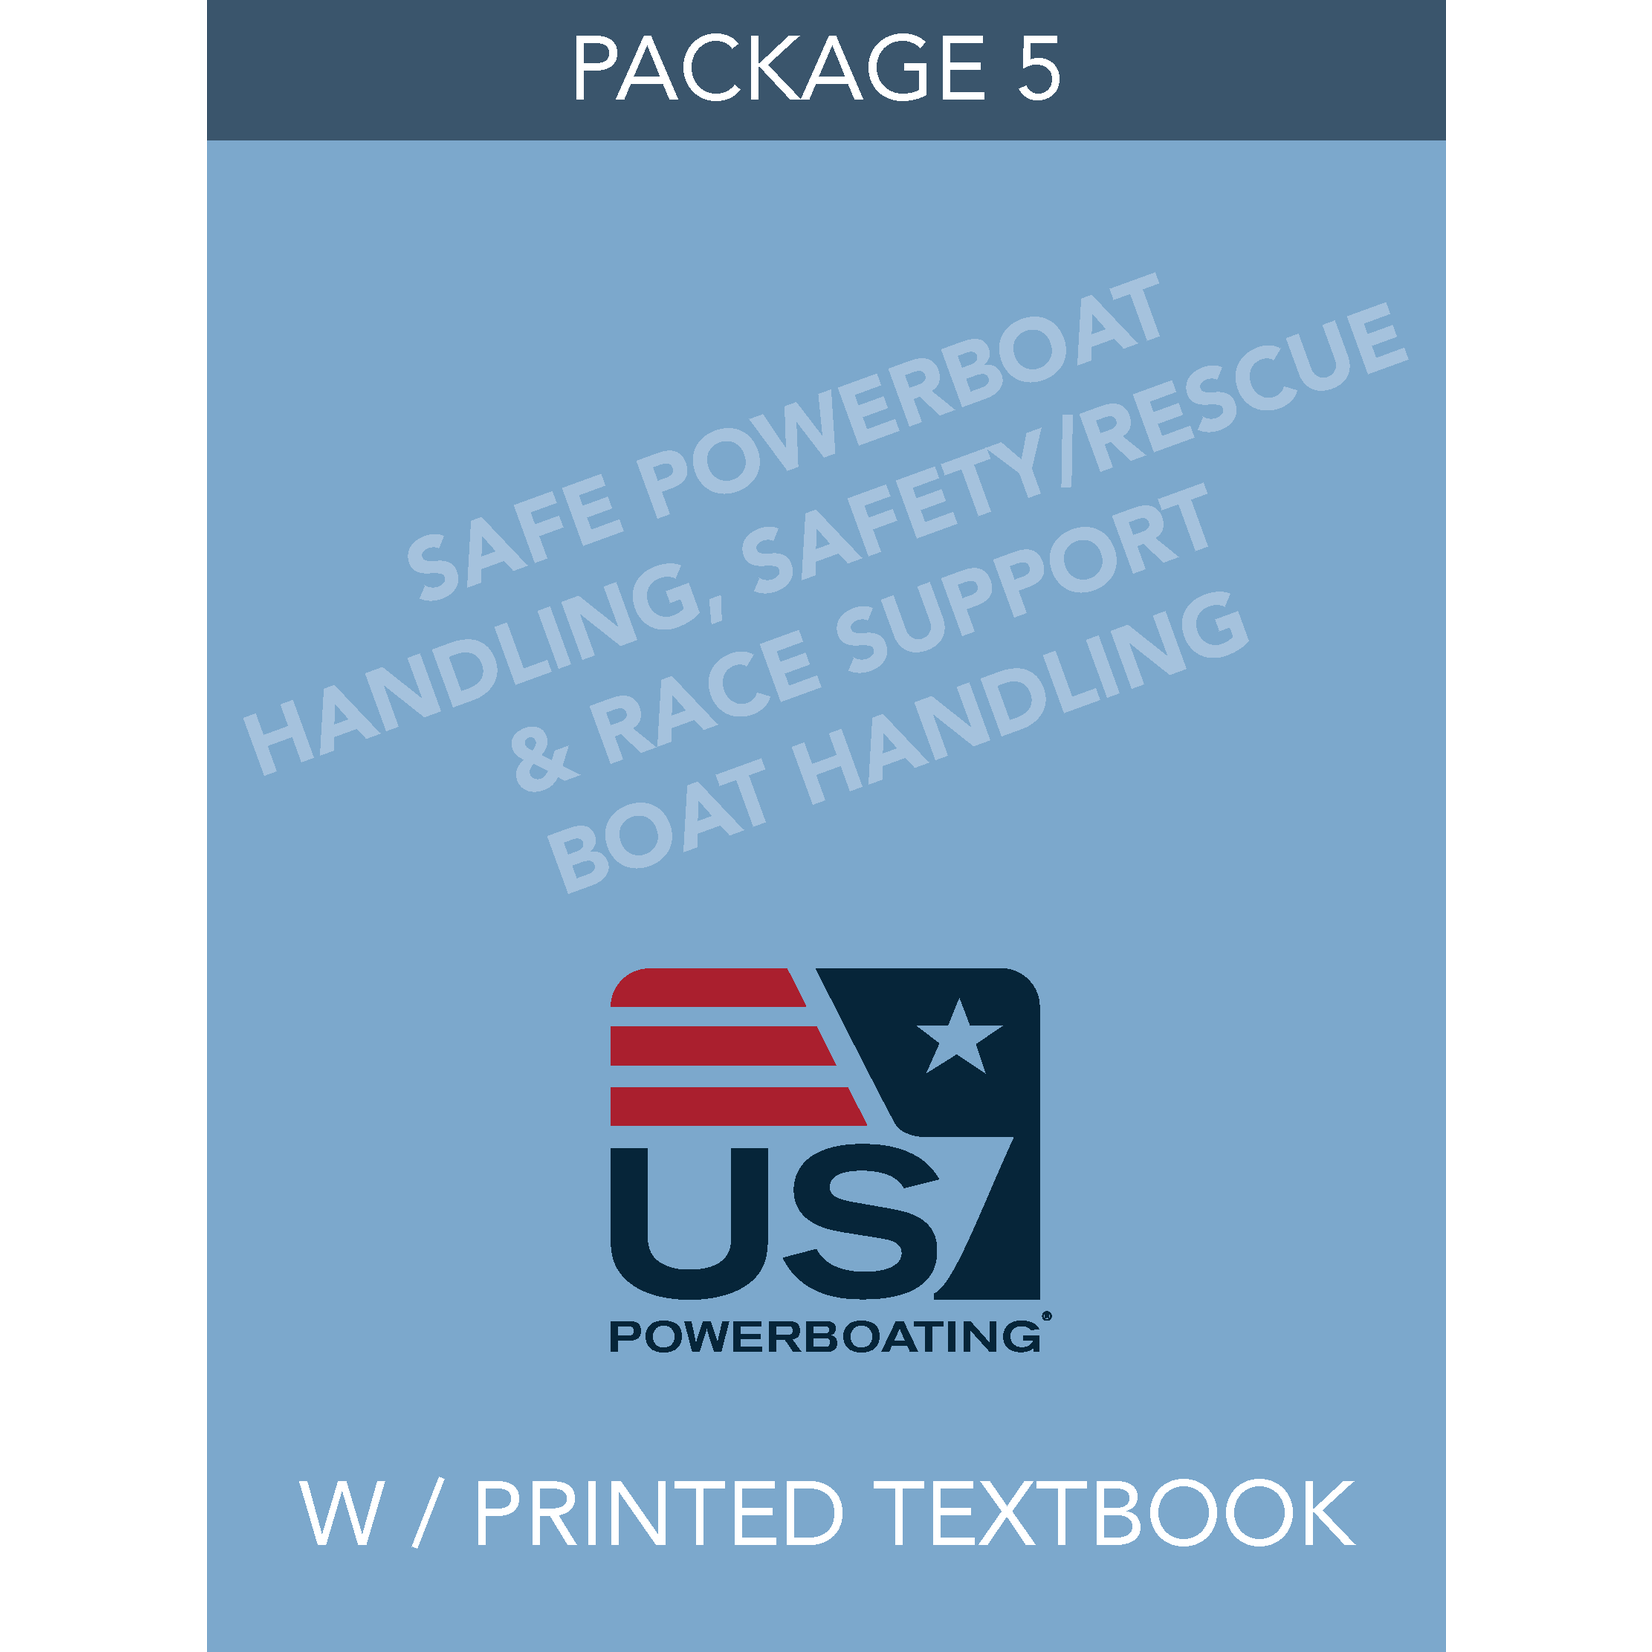 Safe Powerboat Handling, Safety, Rescue & Race Support Boat Handling - Package 5